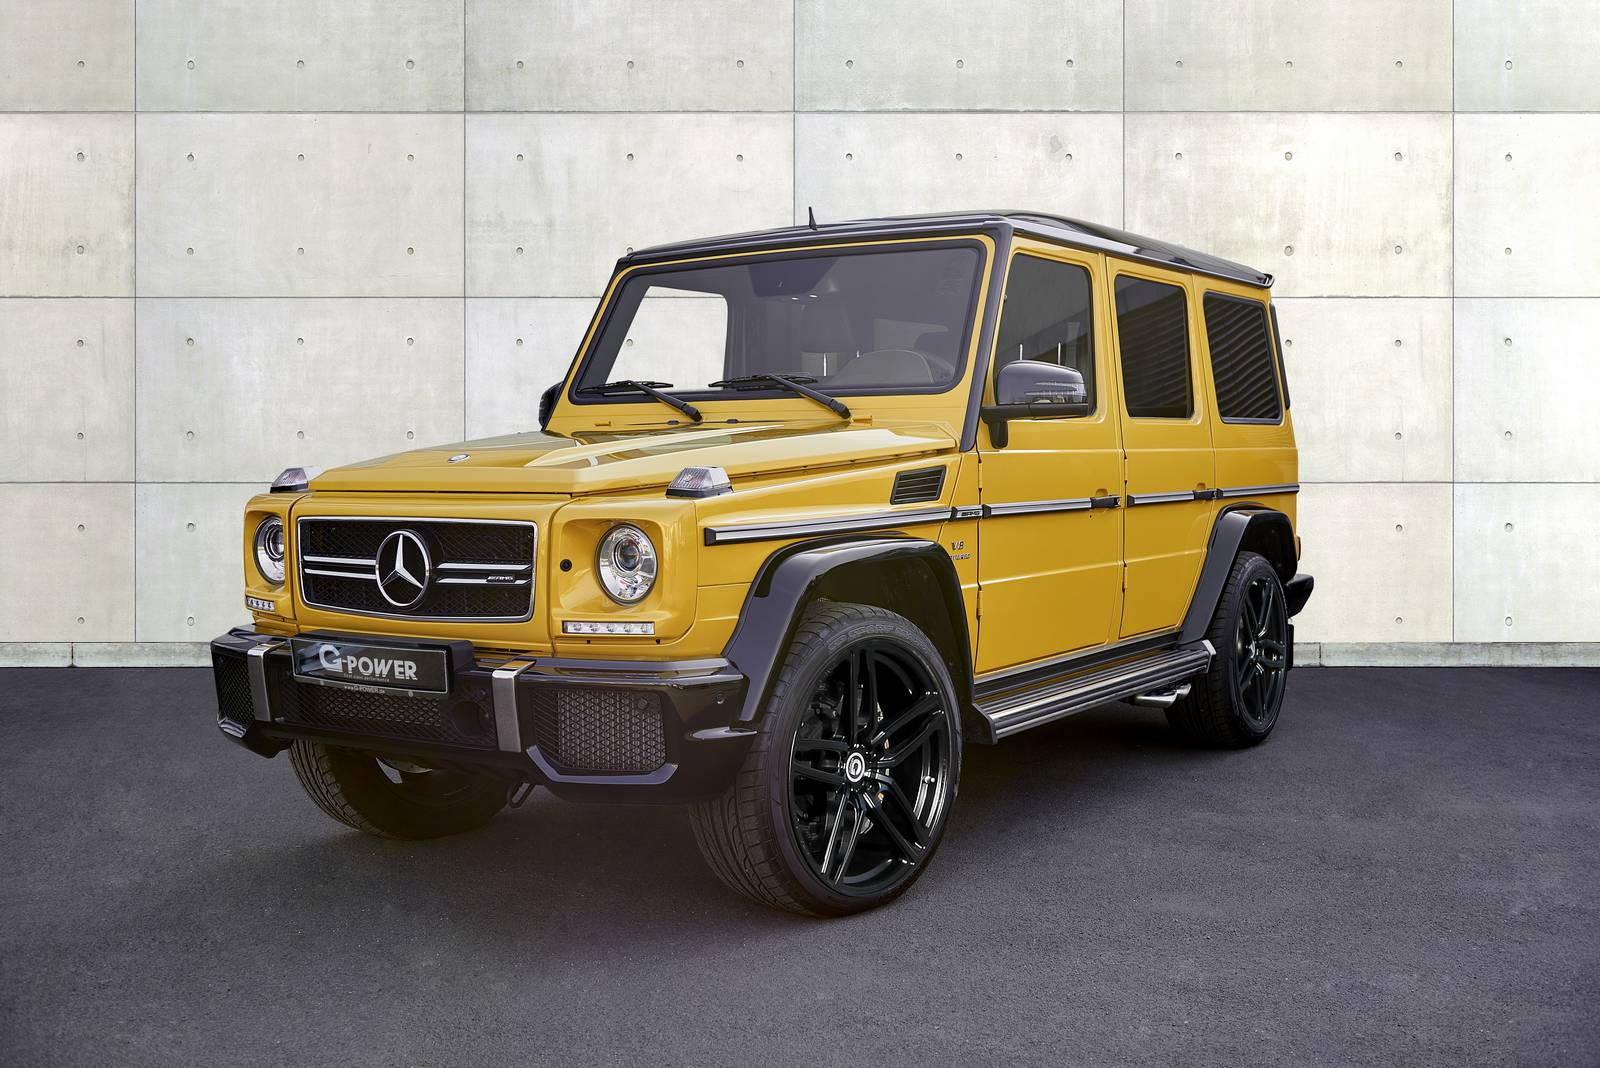 Official g power mercedes benz g63 amg with 645hp gtspirit for Mercedes benz glk amg